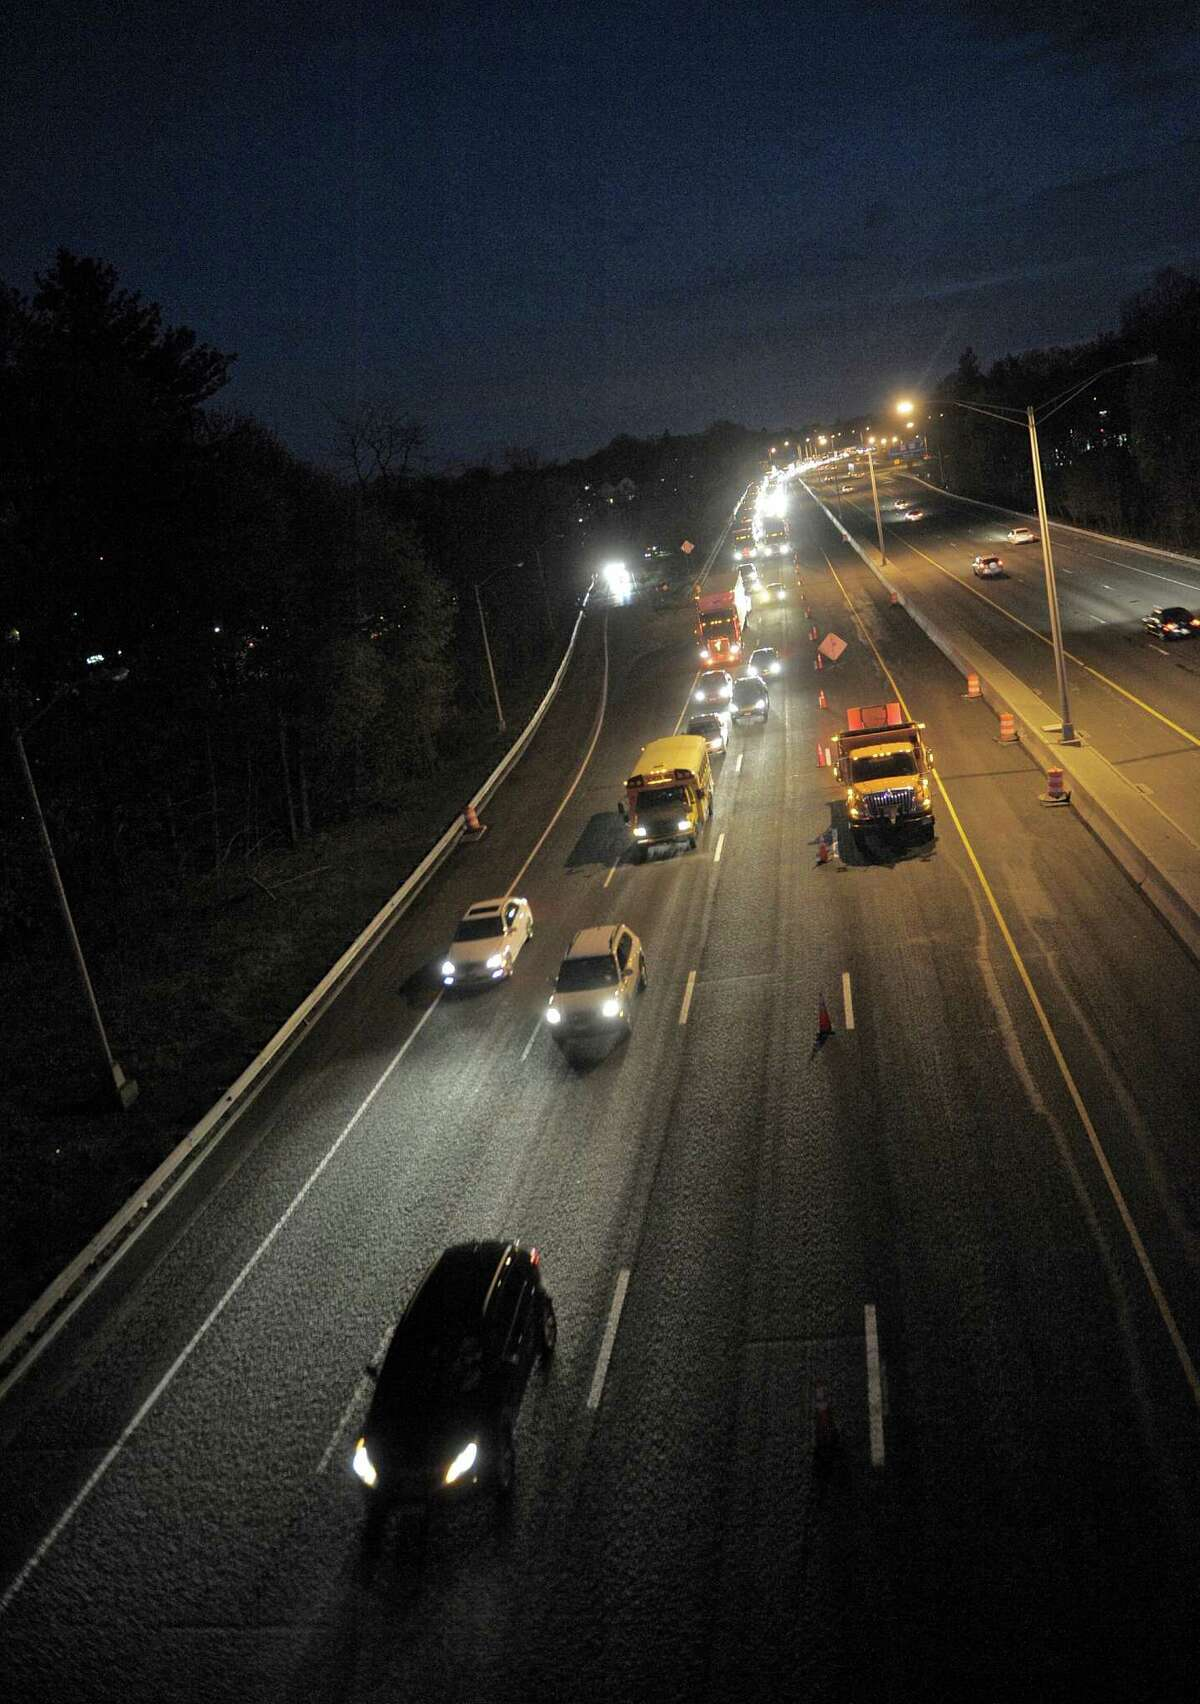 ON OUR ROADSWhy are the overhead lights on our interstates and parkways always burned out instead of illuminating the road for better nighttime safety?